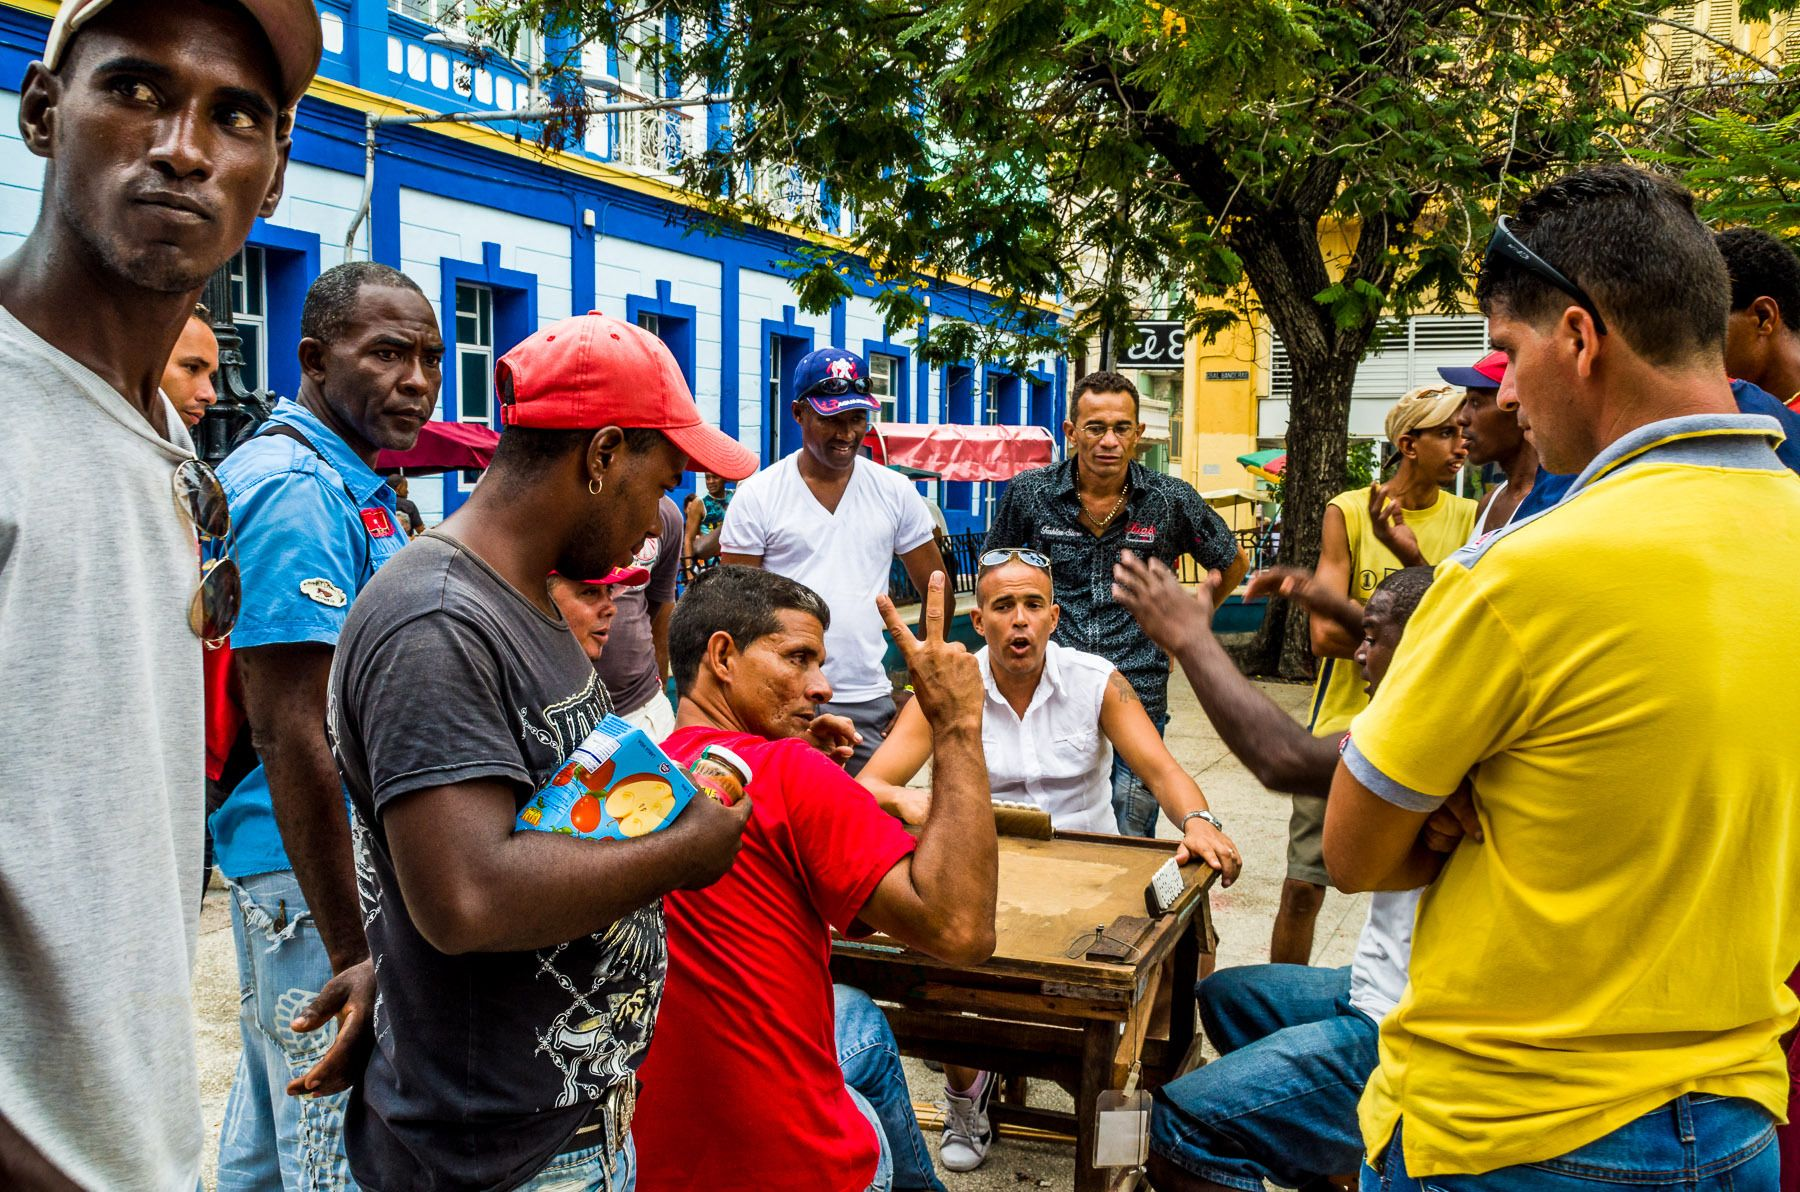 A fiesty game of dominoes on the plaza in Santiago de Cuba.